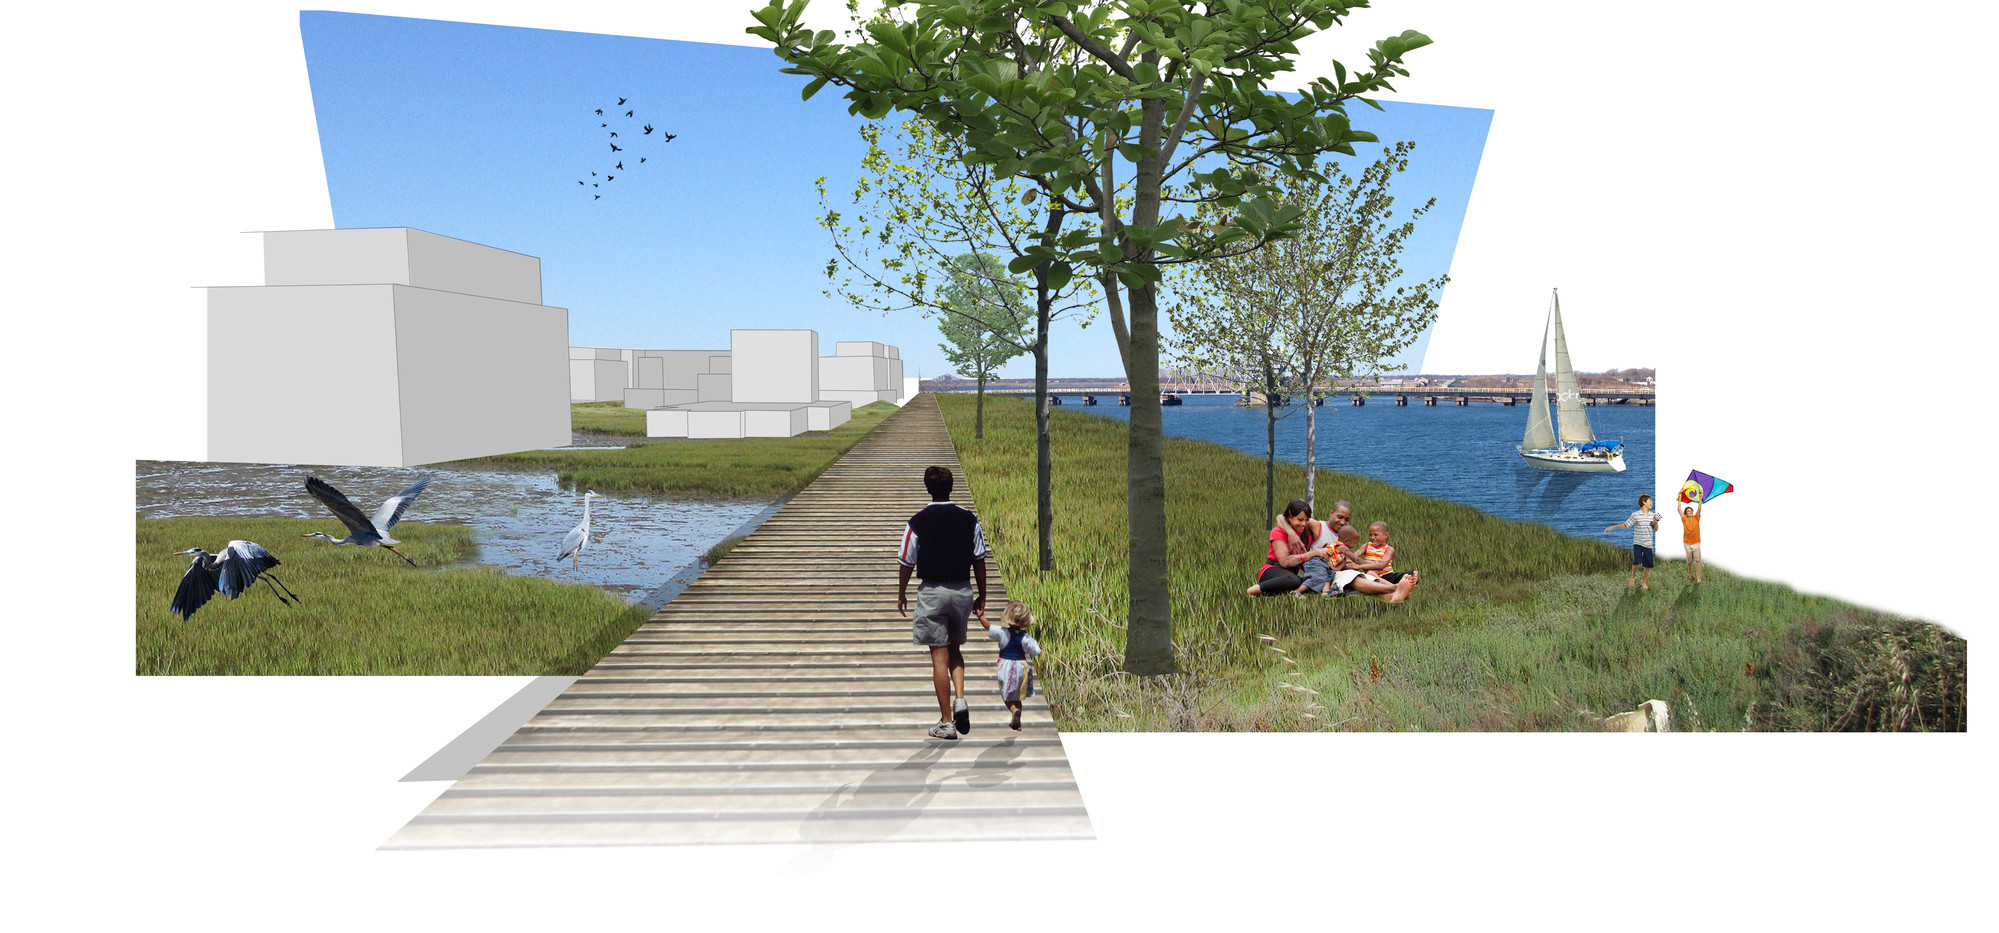 A Dike along Reynolds Channel would serve as protection from 12-foot storm surges, but would also include a bayside park.